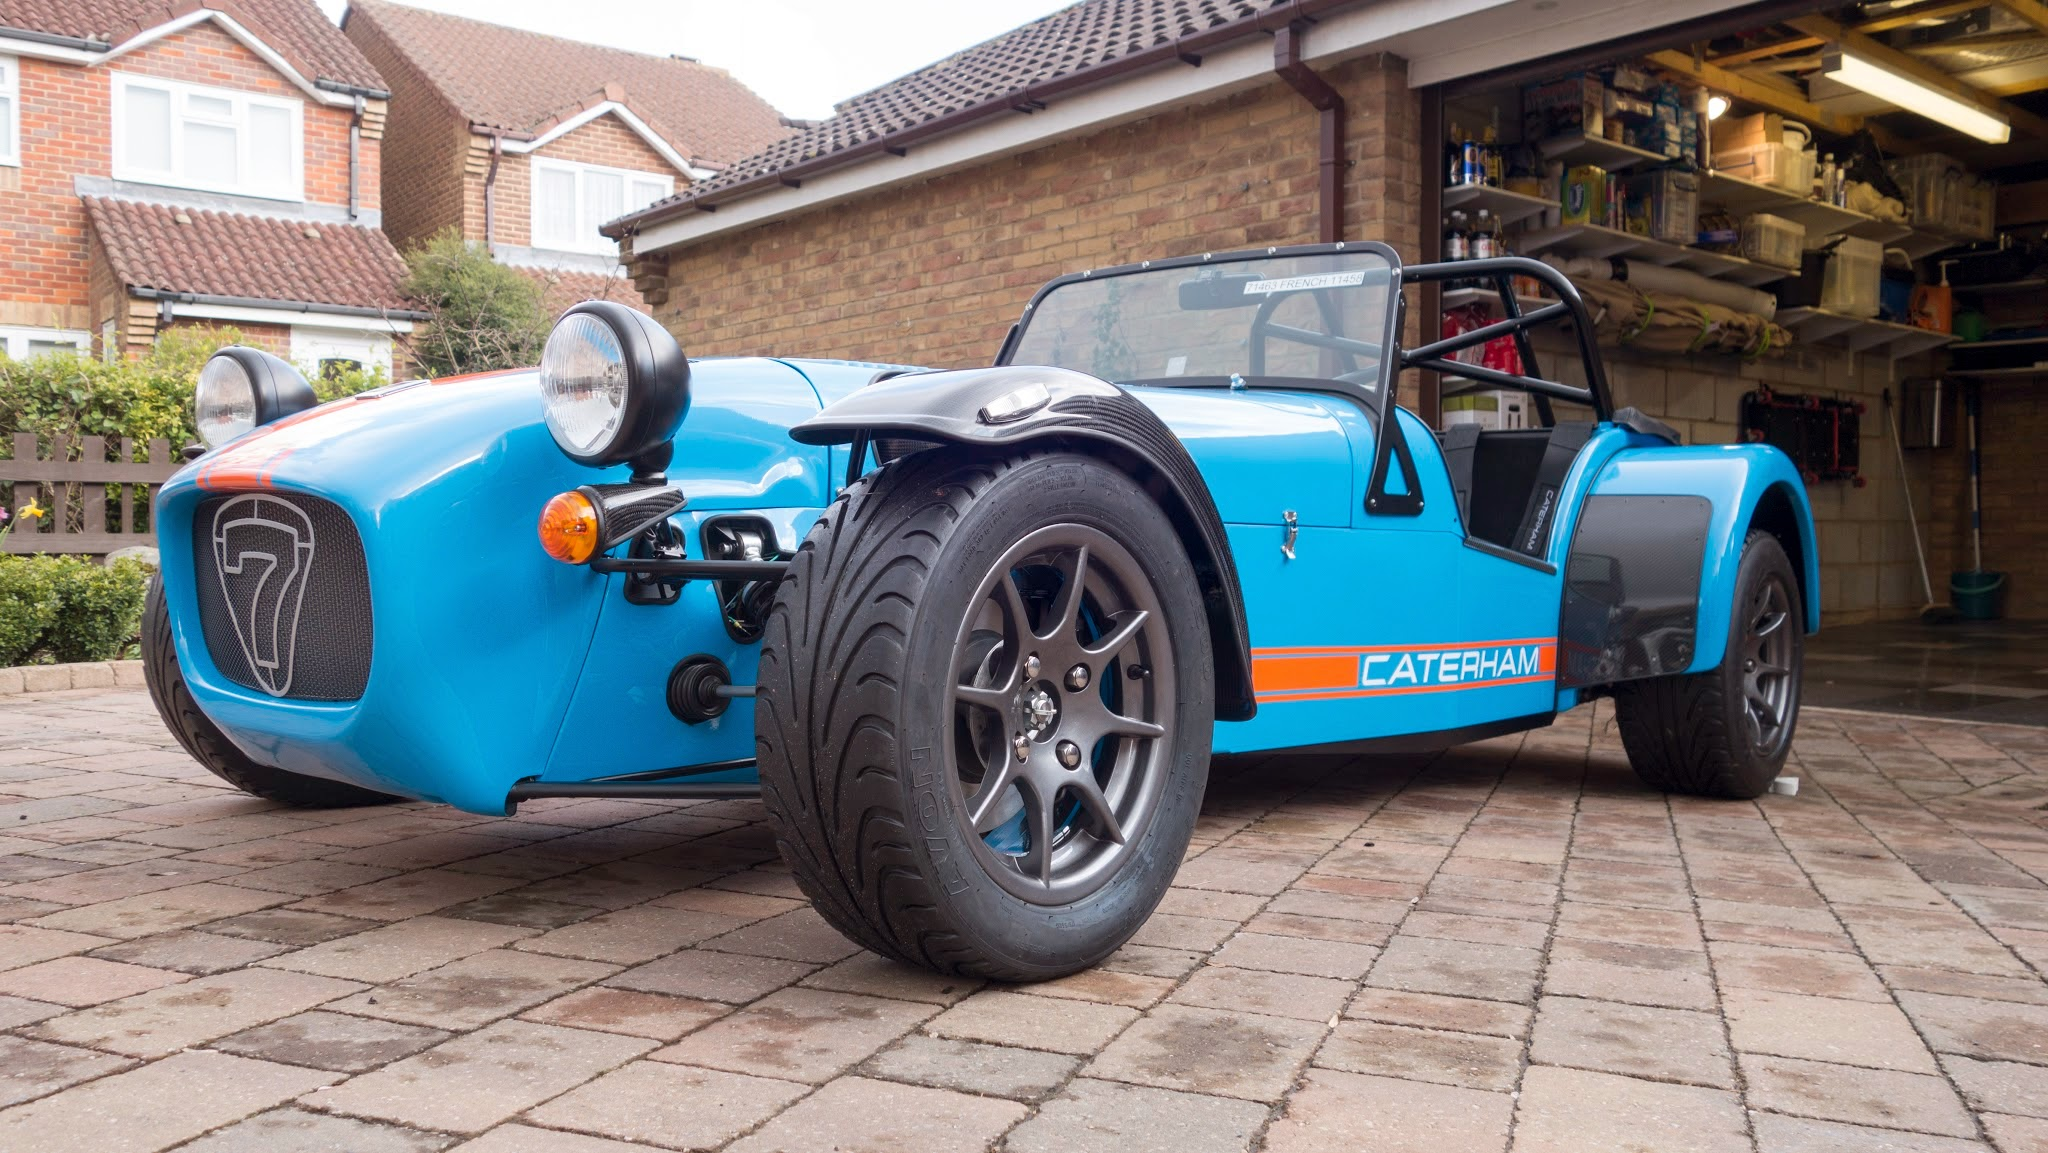 Caterham R500 with anthracite wheels painted in Porsche Riviera Blue 39e with Mactac Semi Fluorescent Orange and white Caterham Font triple stripe and decals.